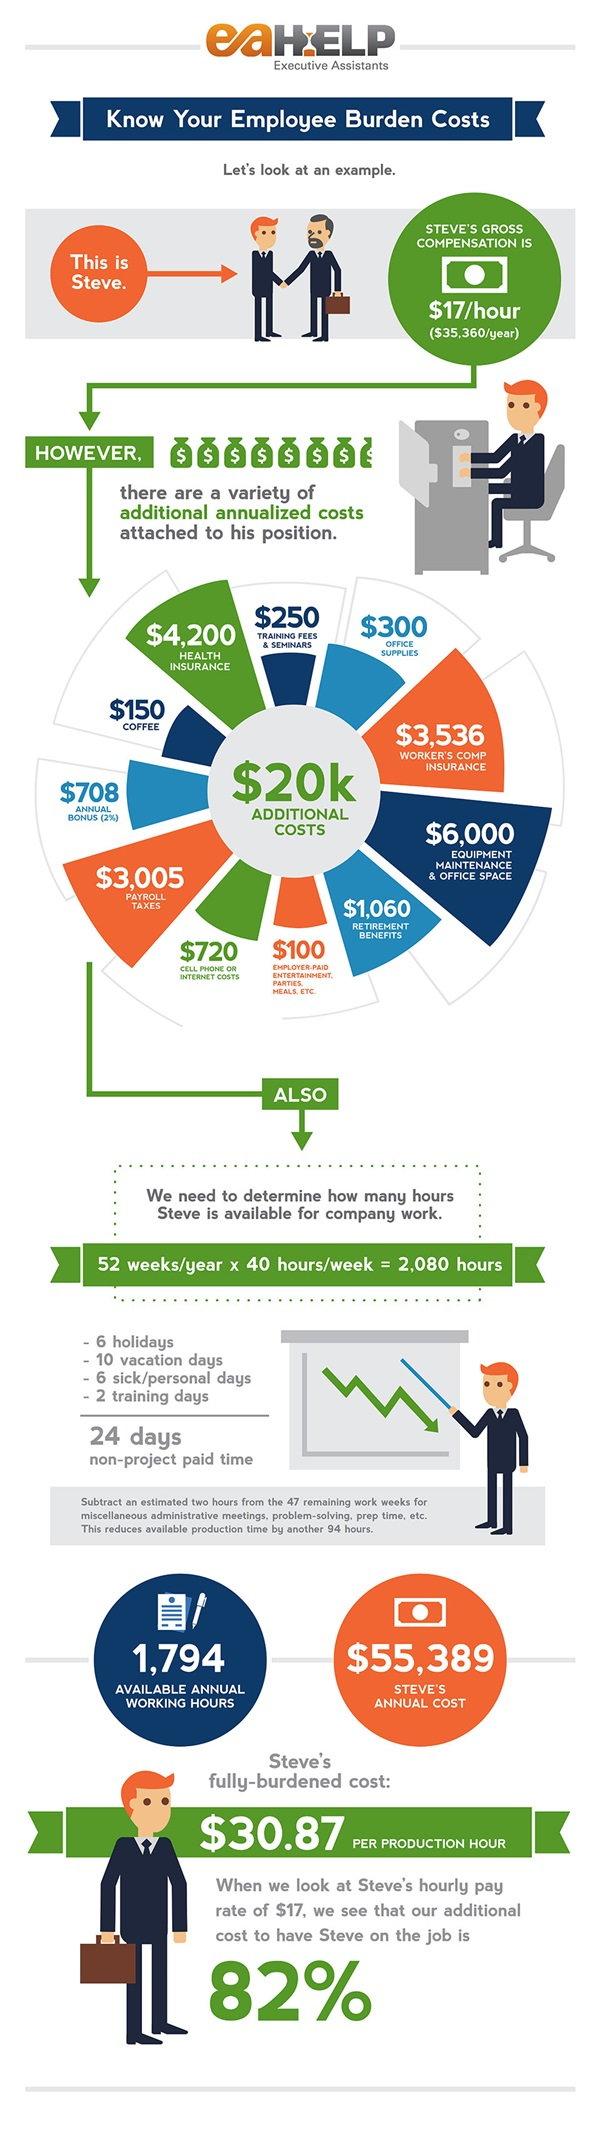 eahelp infographic